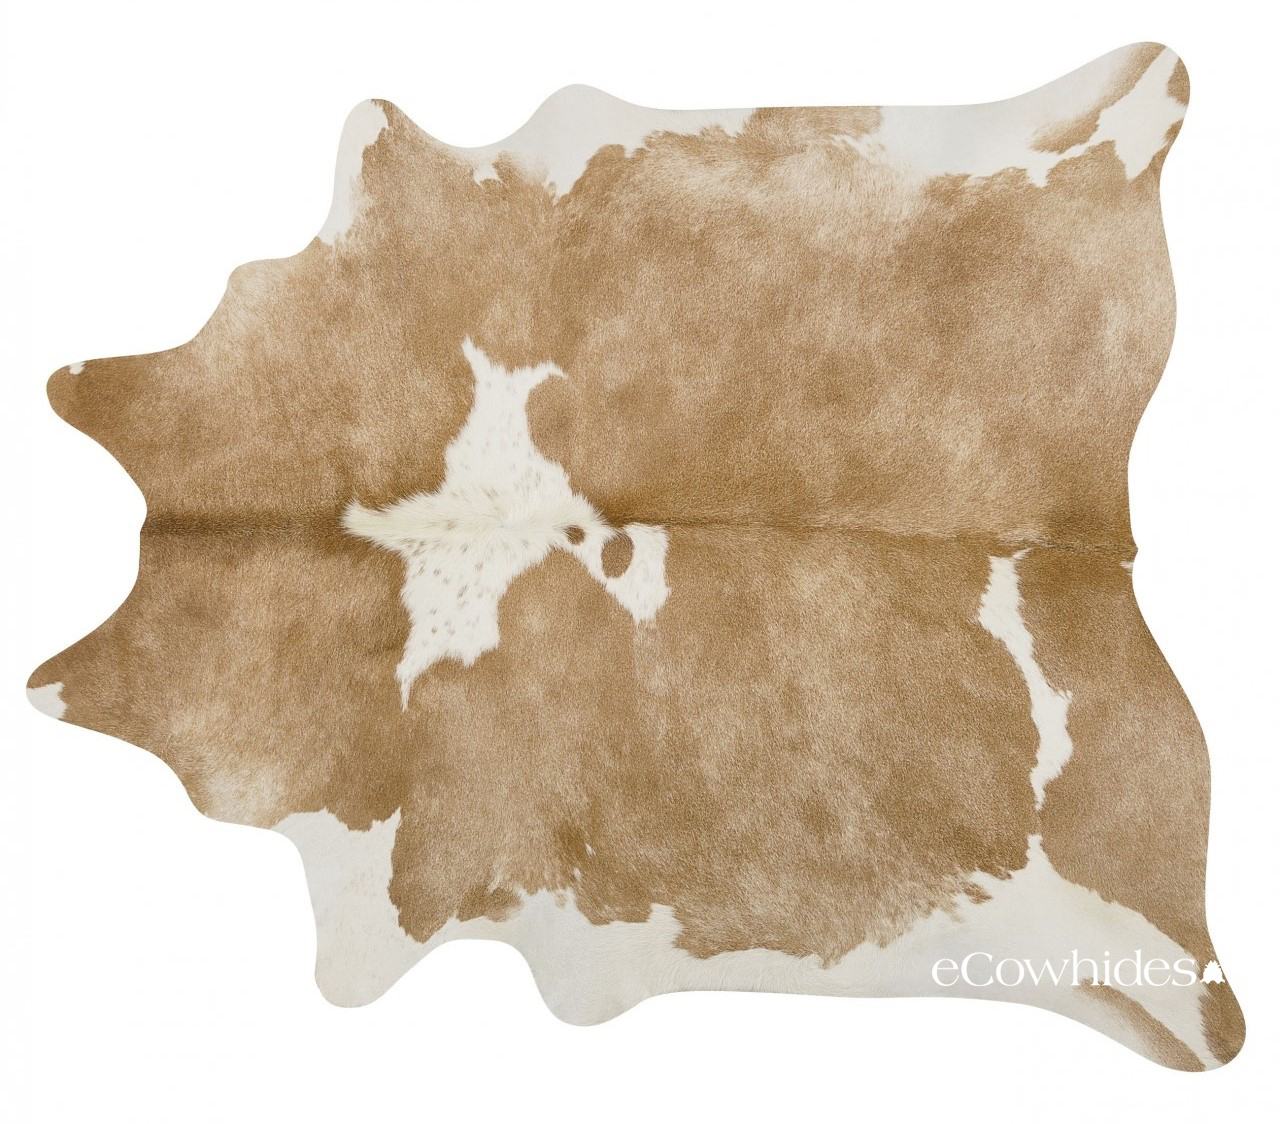 Palomino Cow Hide $275+